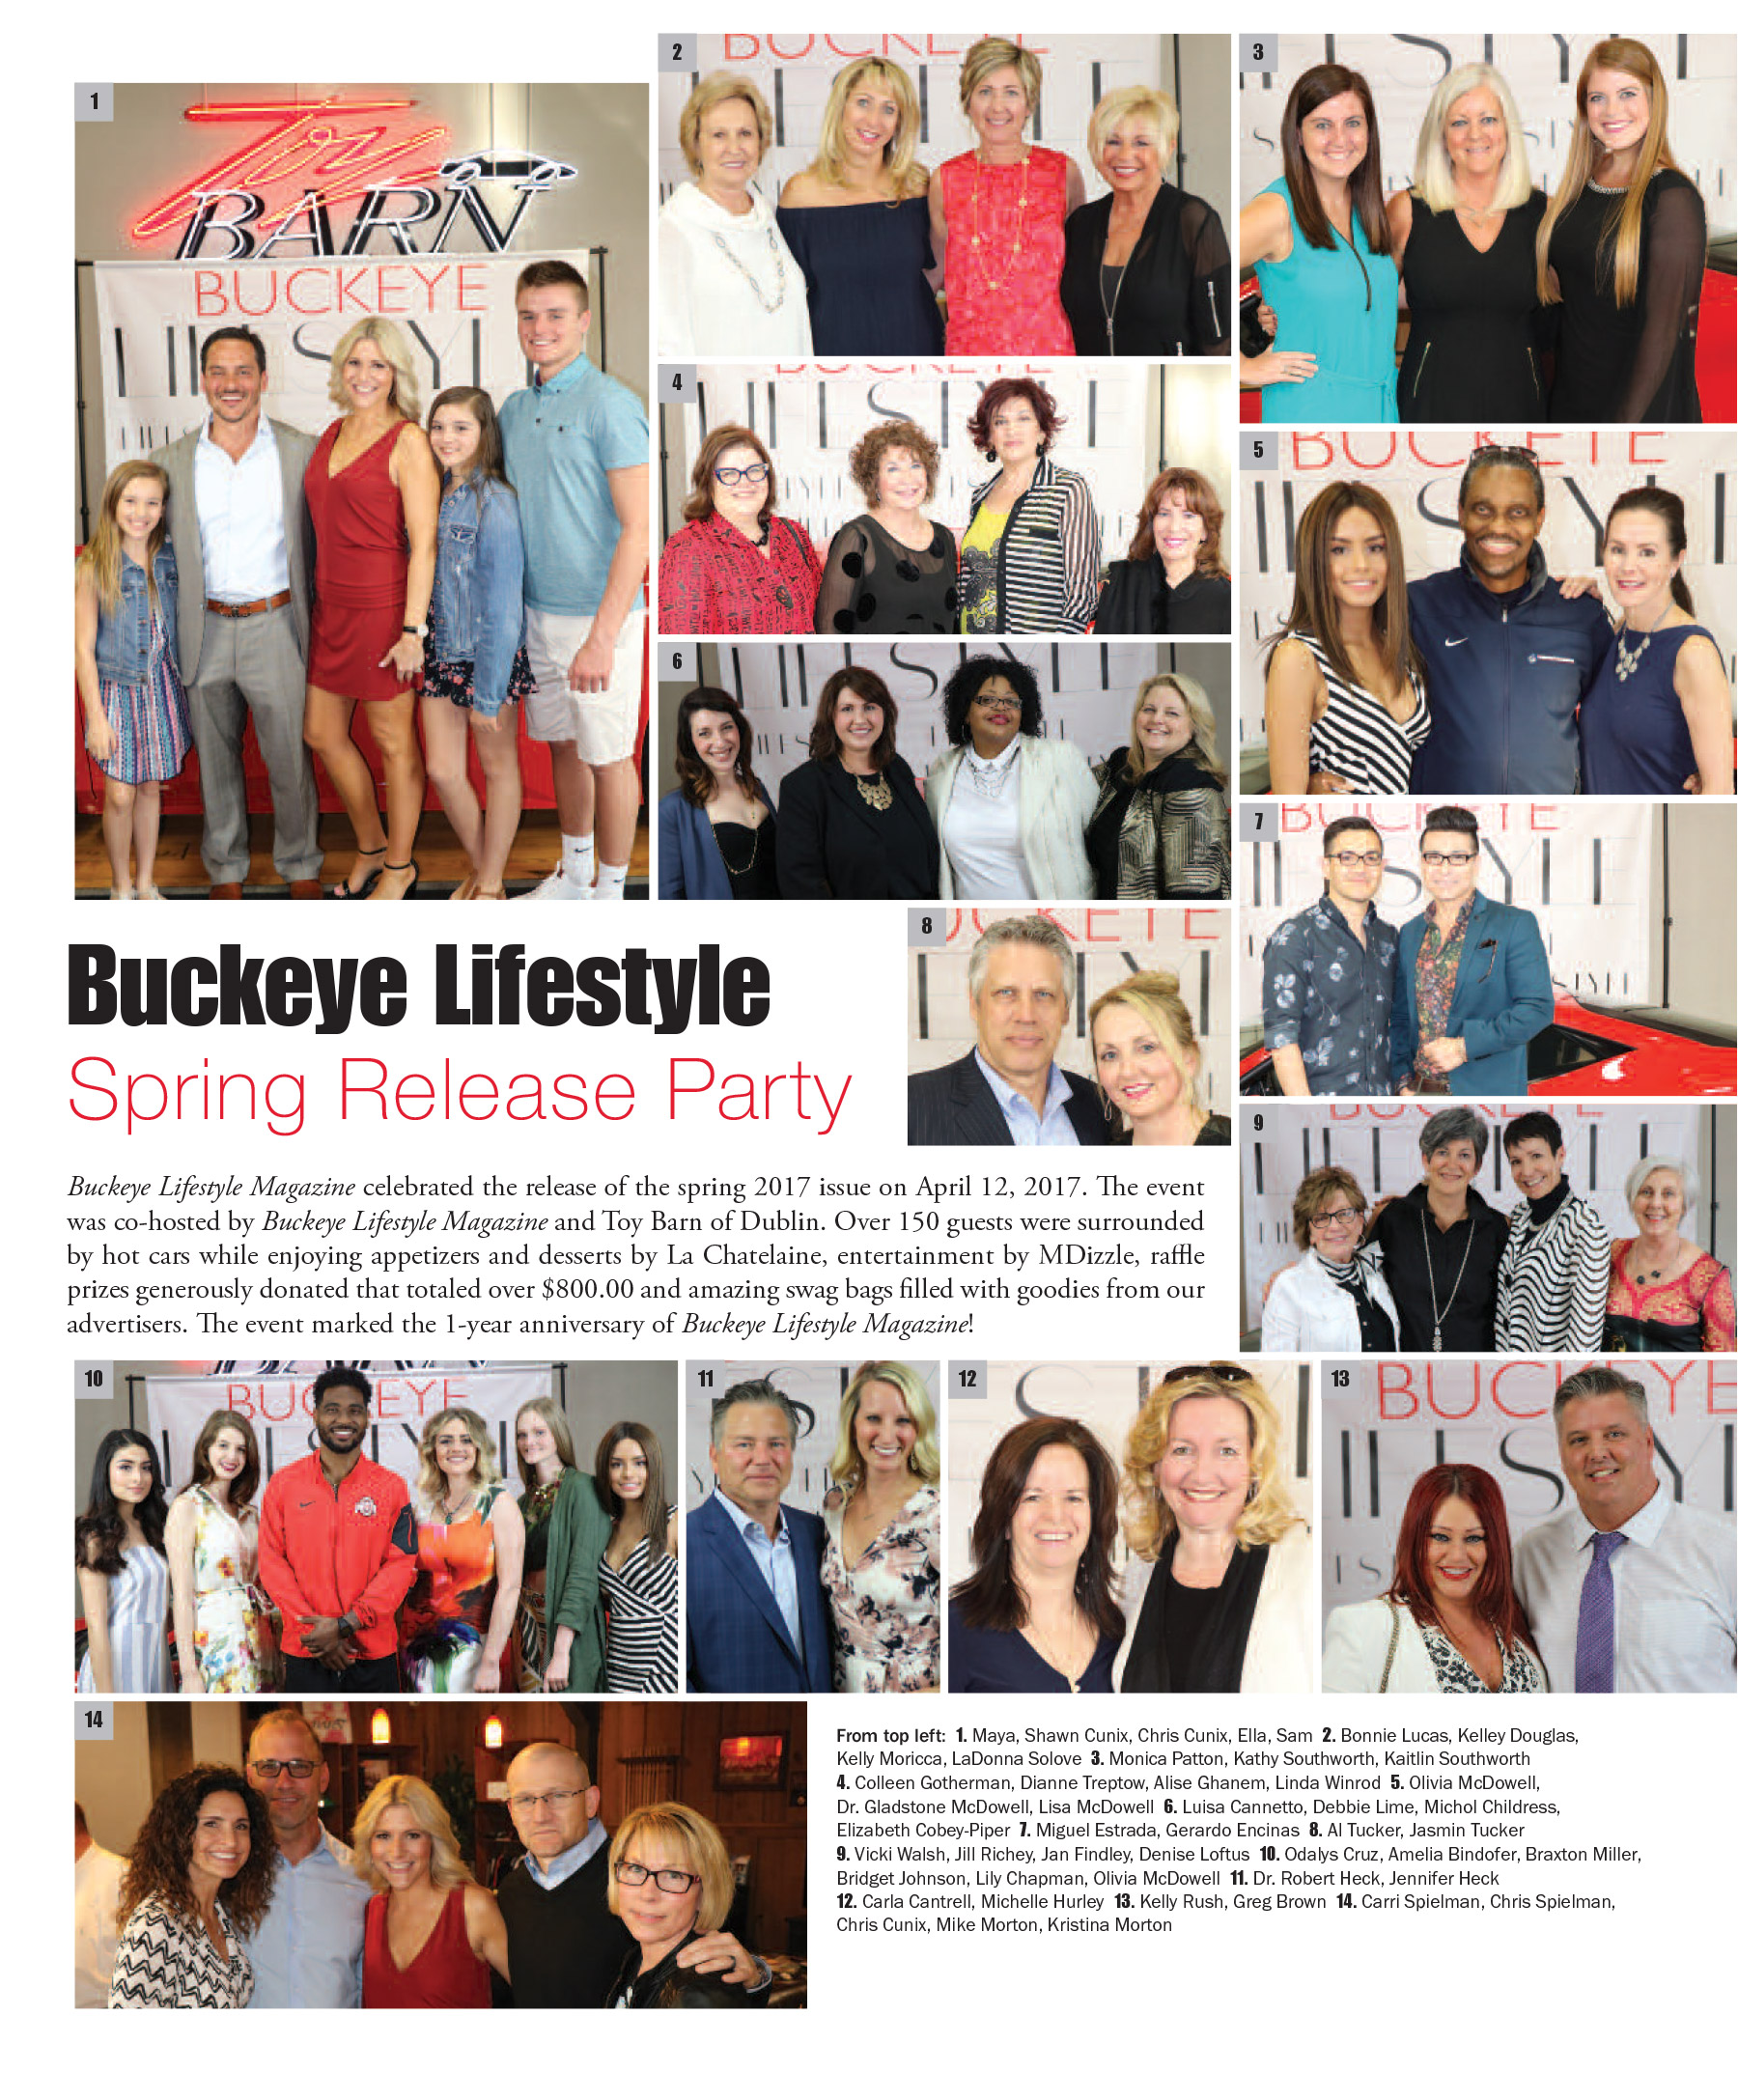 Buckeye Lifestyle – spring release party